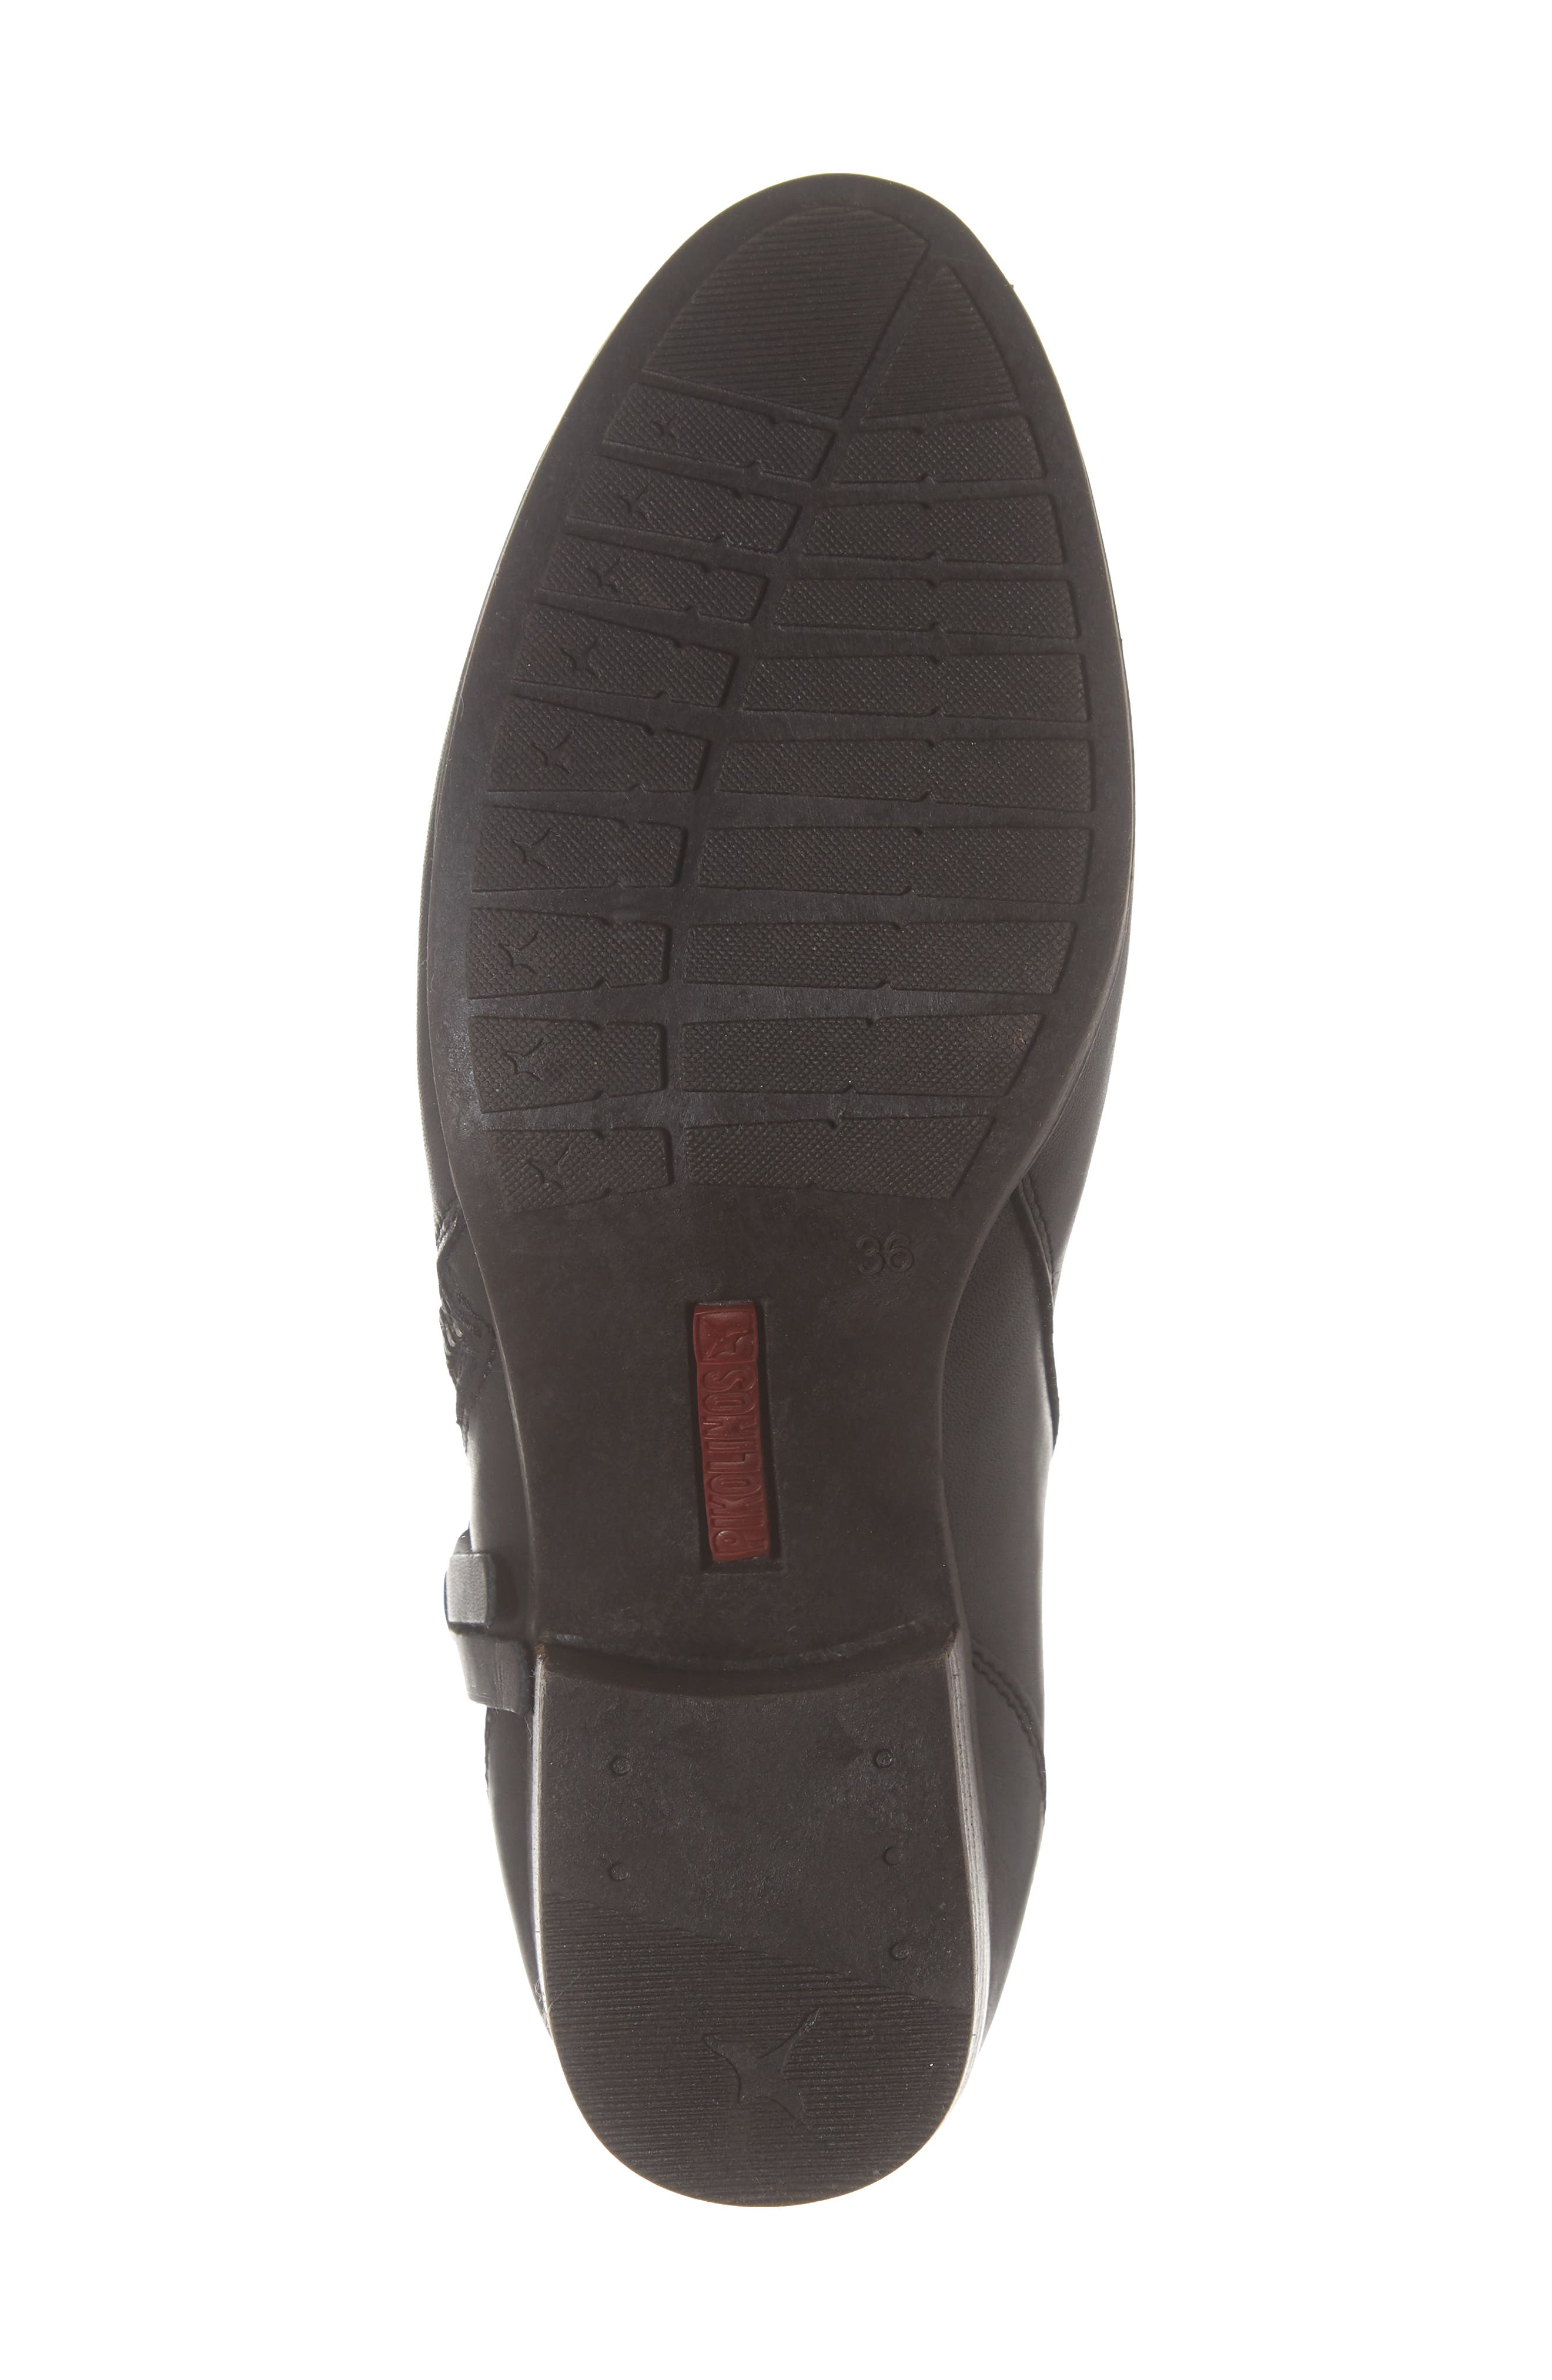 Daroca Bootie,                             Alternate thumbnail 6, color,                             BLACK LEATHER